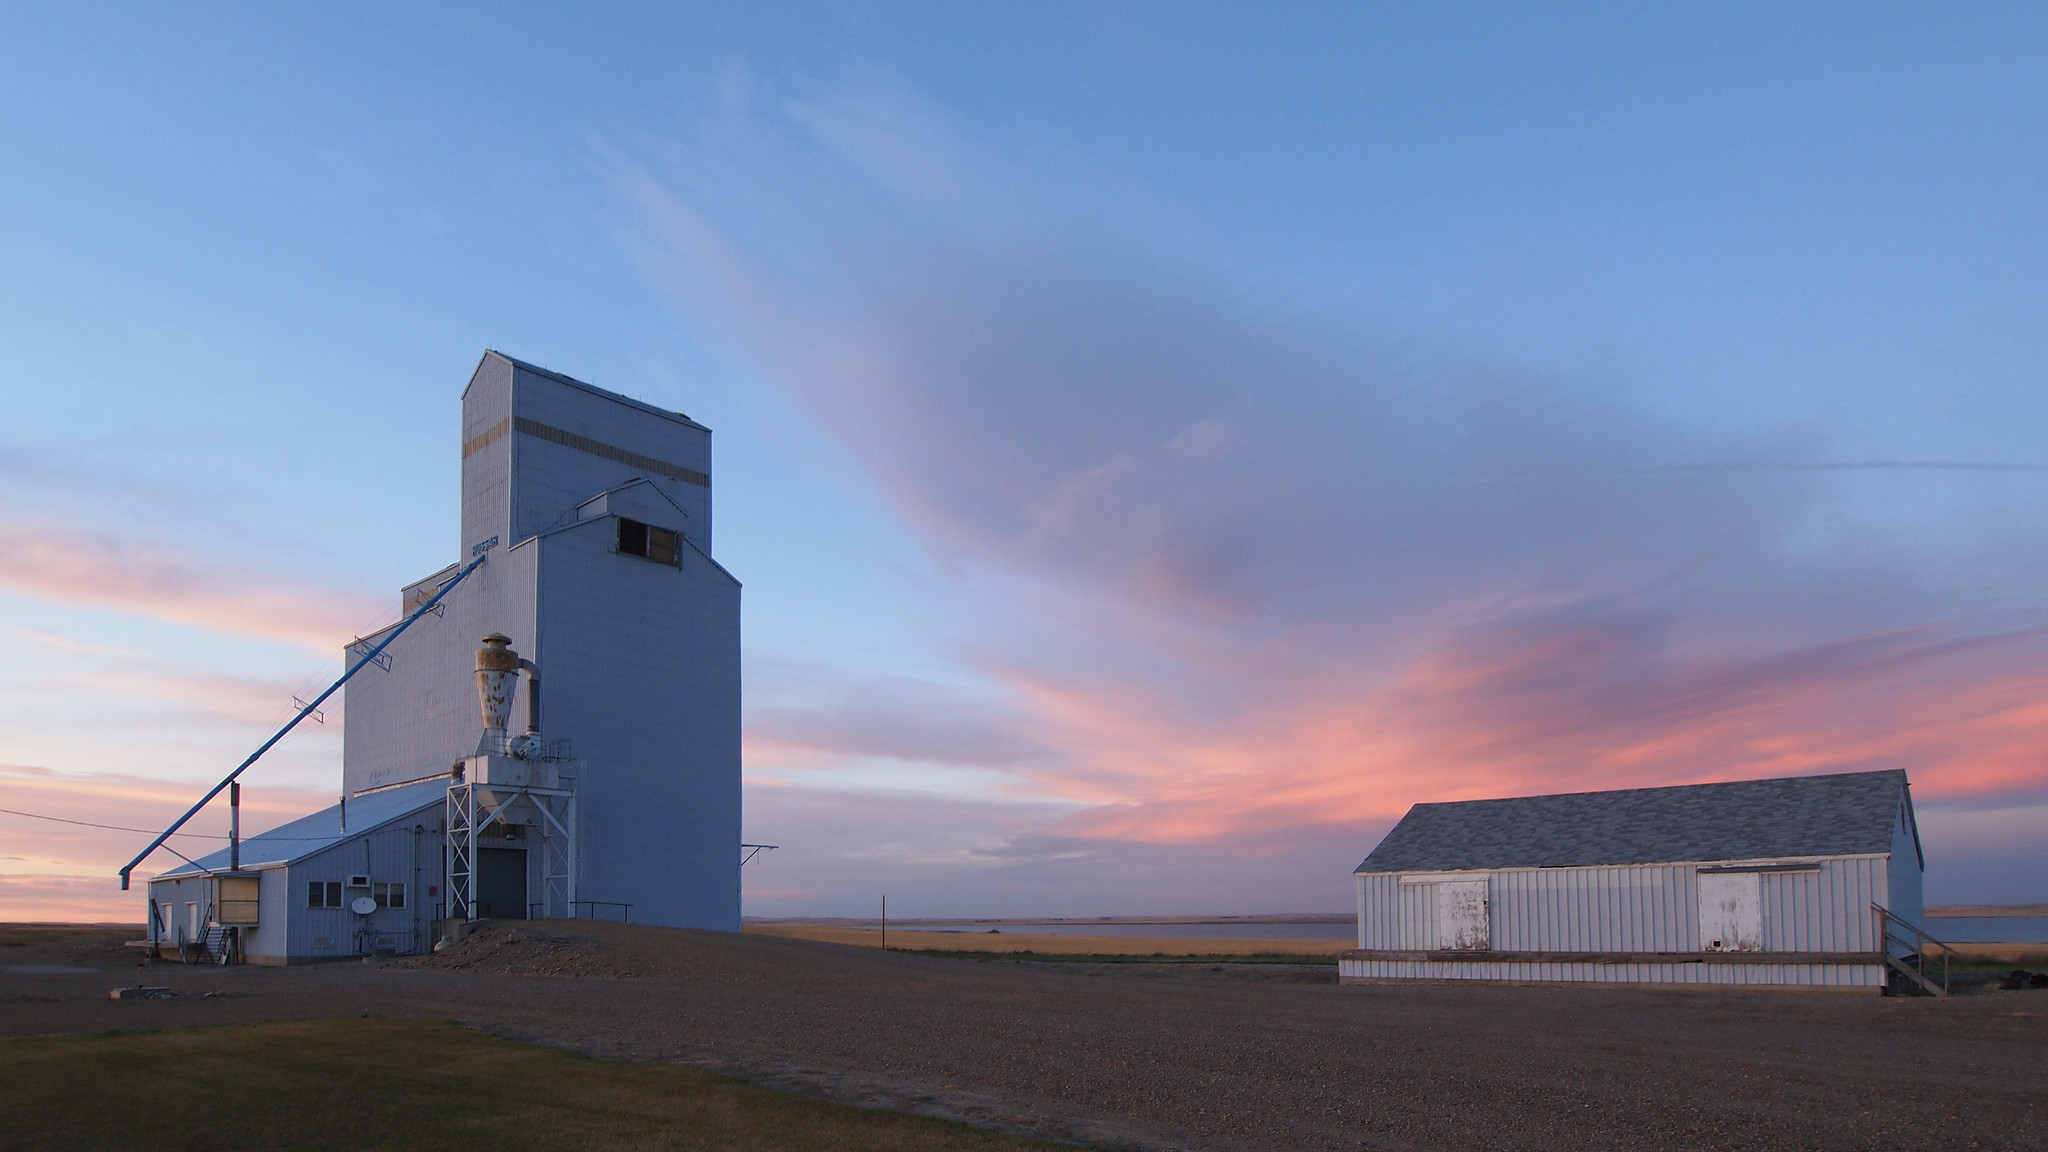 A grain elevator at sunset